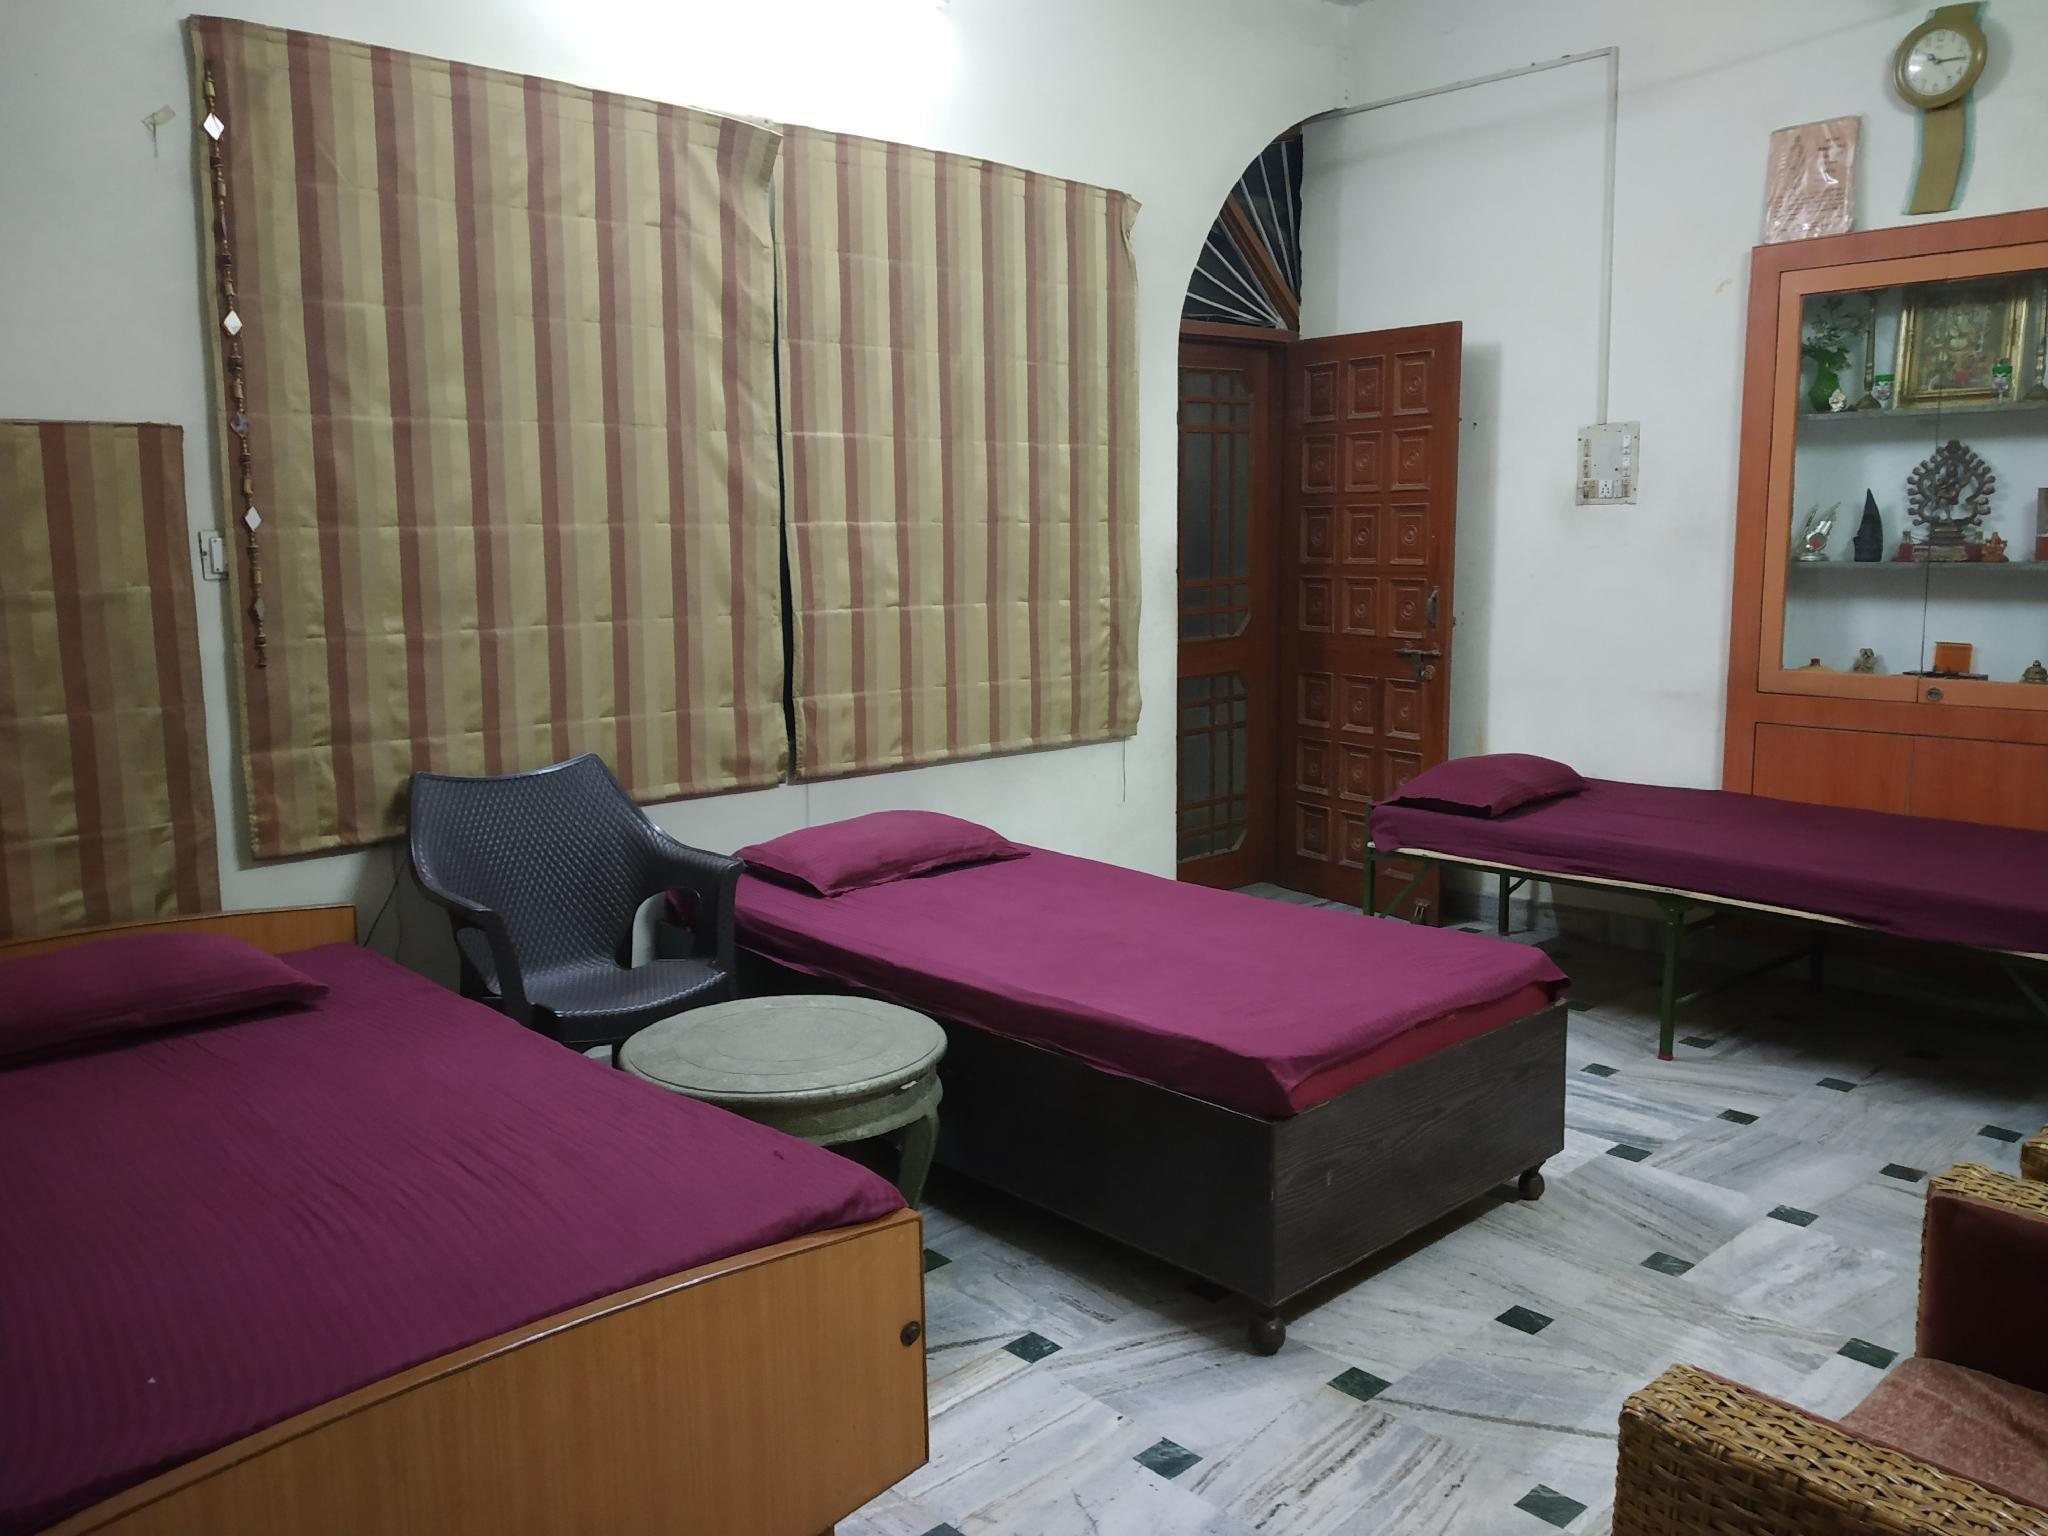 4 Single Beds in Dormitory - Mixed